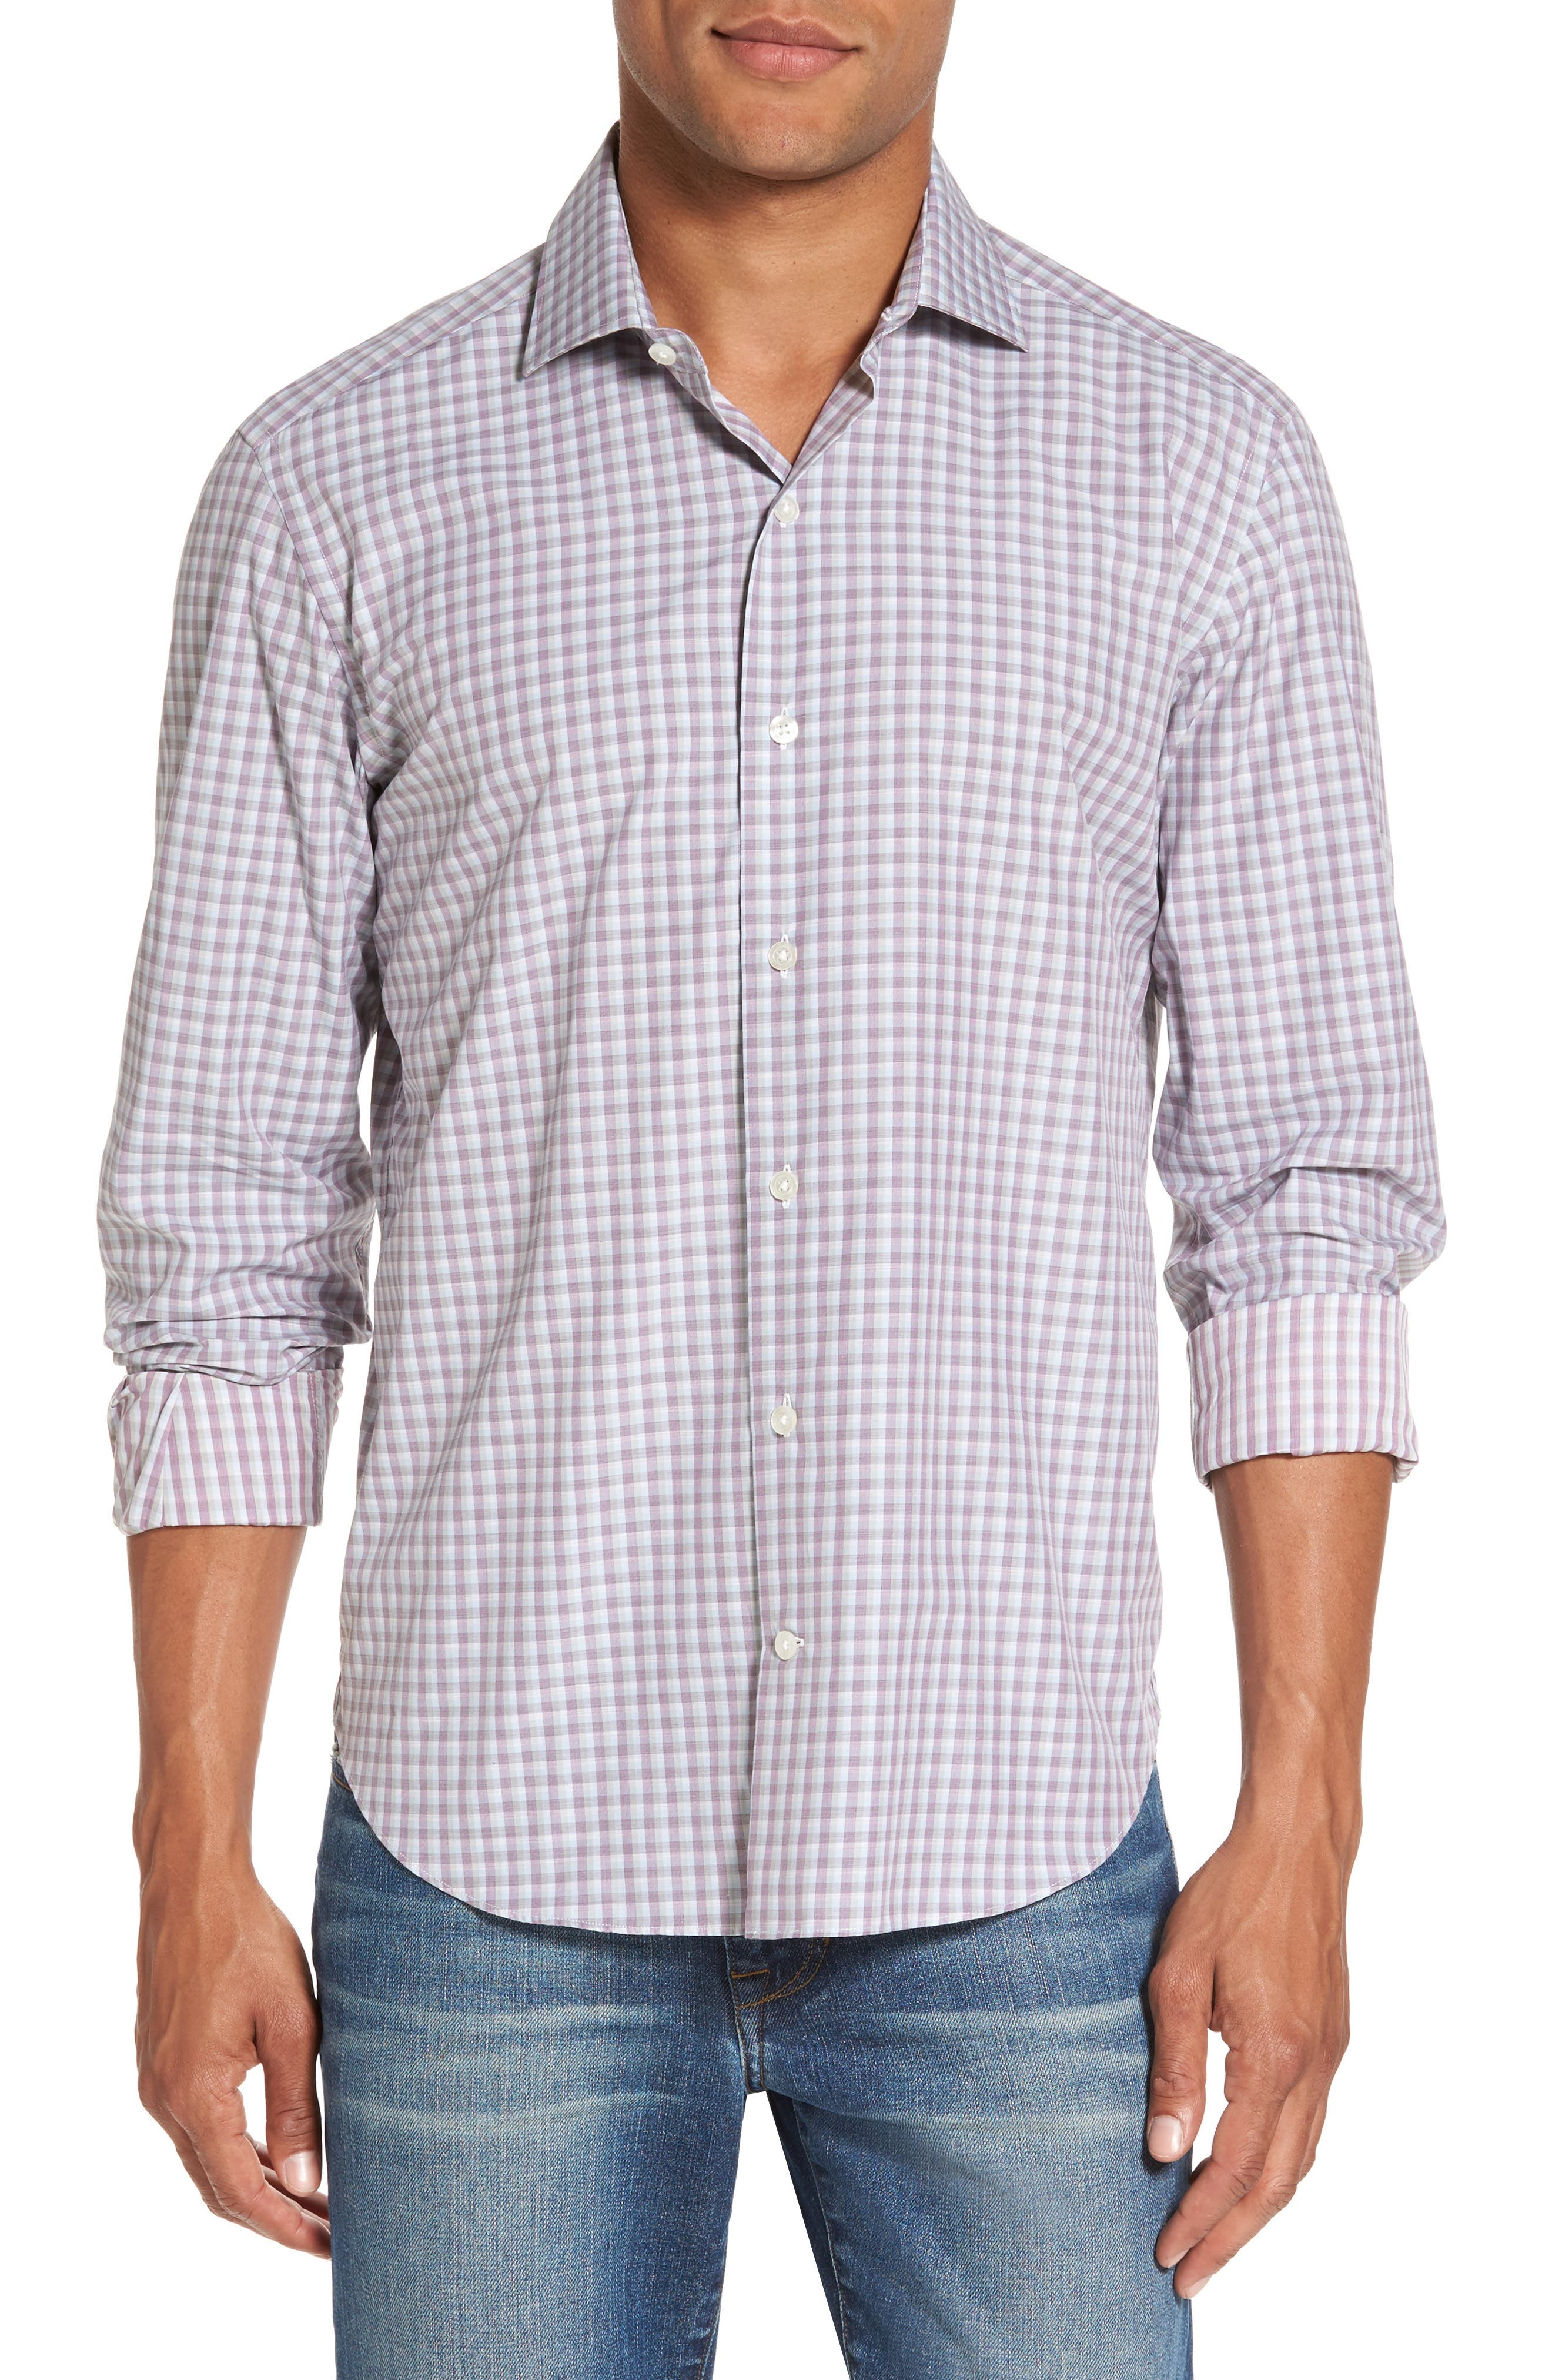 Culturata Slim Fit Plaid Sport Shirt